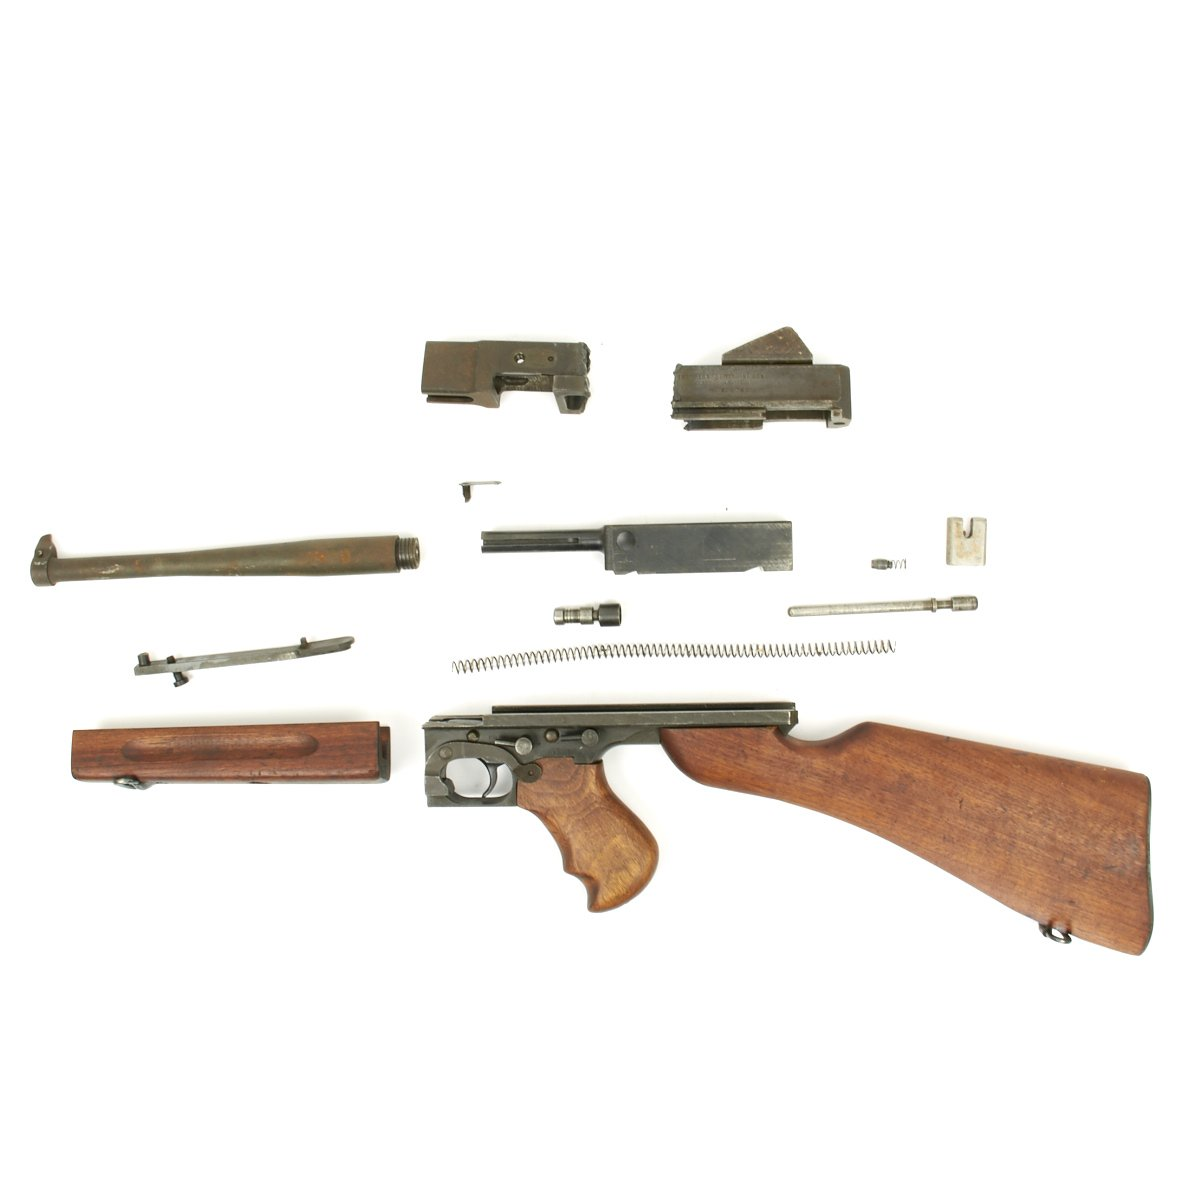 Original Us Wwii Thompson M1a1 Smg Parts Set With Original Barrel